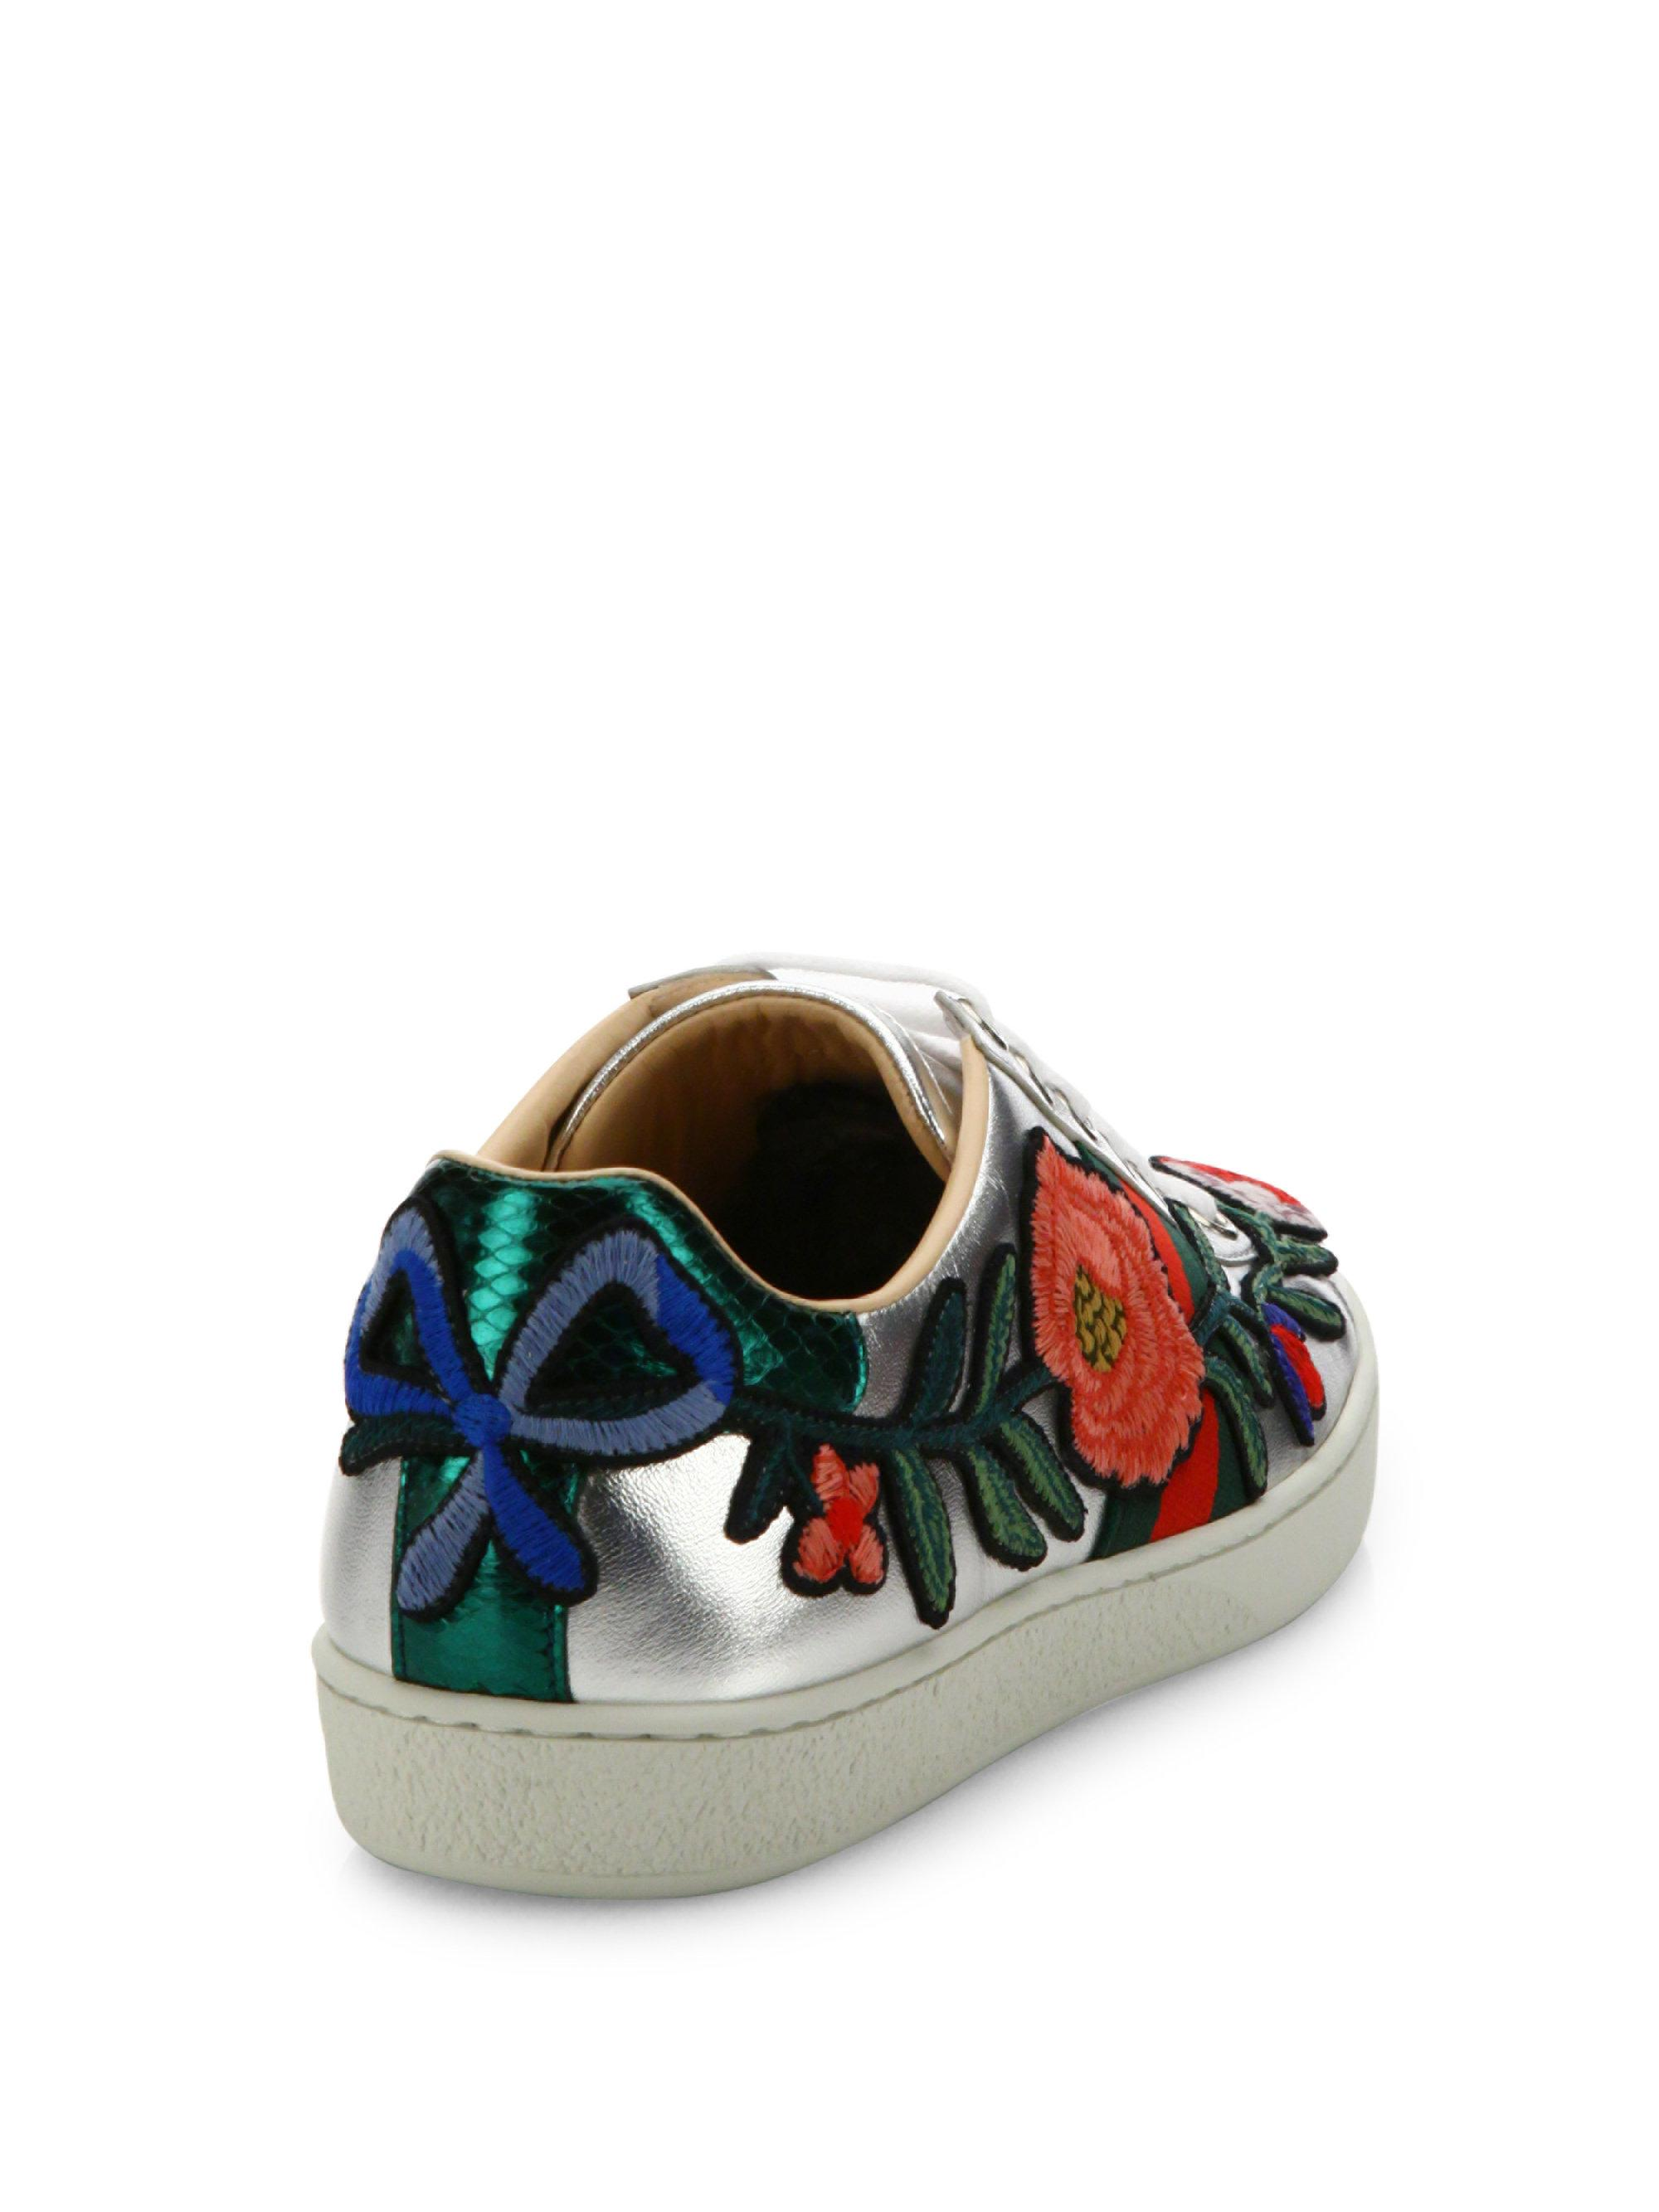 6f59972f09c Lyst - Gucci New Ace Floral-embroidered Metallic Leather Sneakers in ...